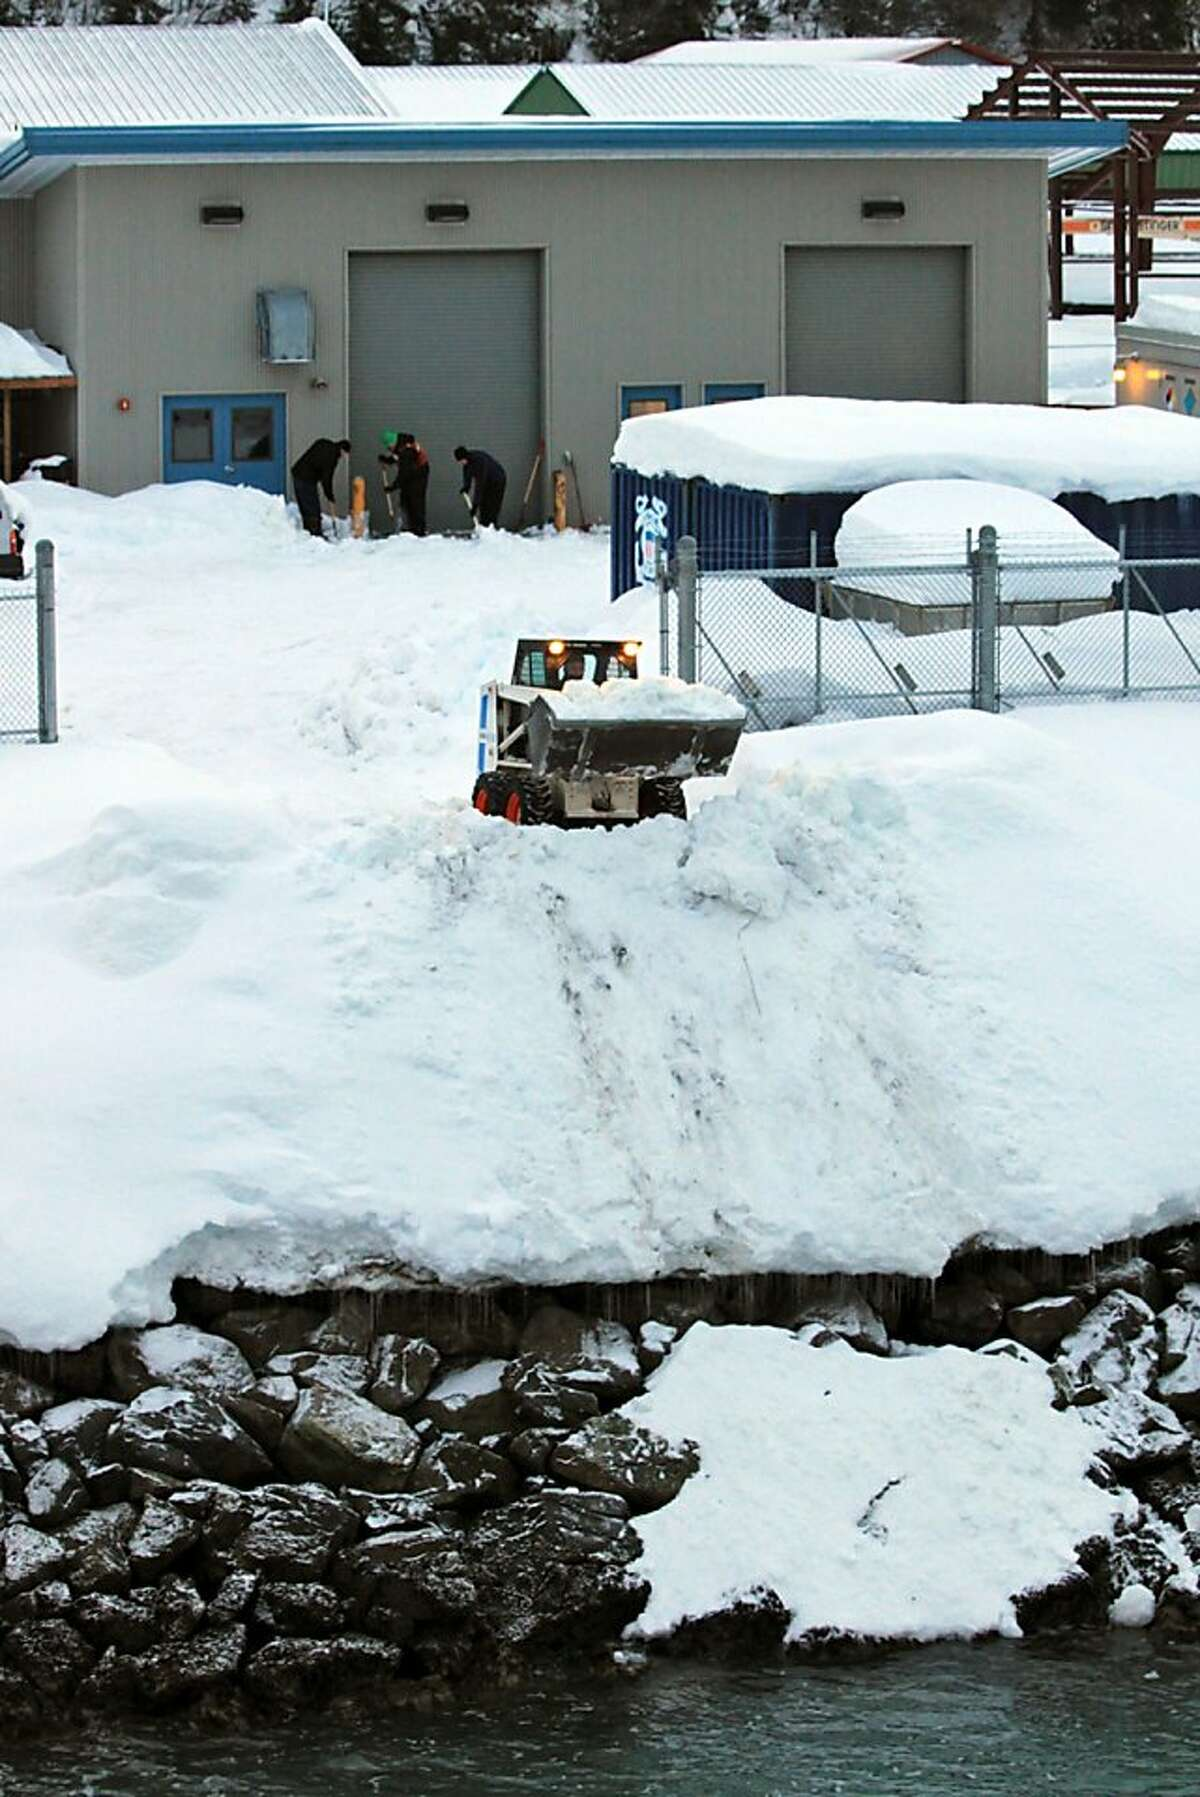 This US Coast Guard photo obtained January 11, 2012 shows the crew of the Coast Guard Cutter Sycamore as they shovel several feet of snow from piers in the Cordova harbor on January 9, 2012. Winter storms over the last three weeks have deposited enough snow in the city of Cordova to damage houses and keep Coast Guard crews shoveling daily to keep the cutter and facility clear and ready for response. AFP PHOTO/US COAST GUARD